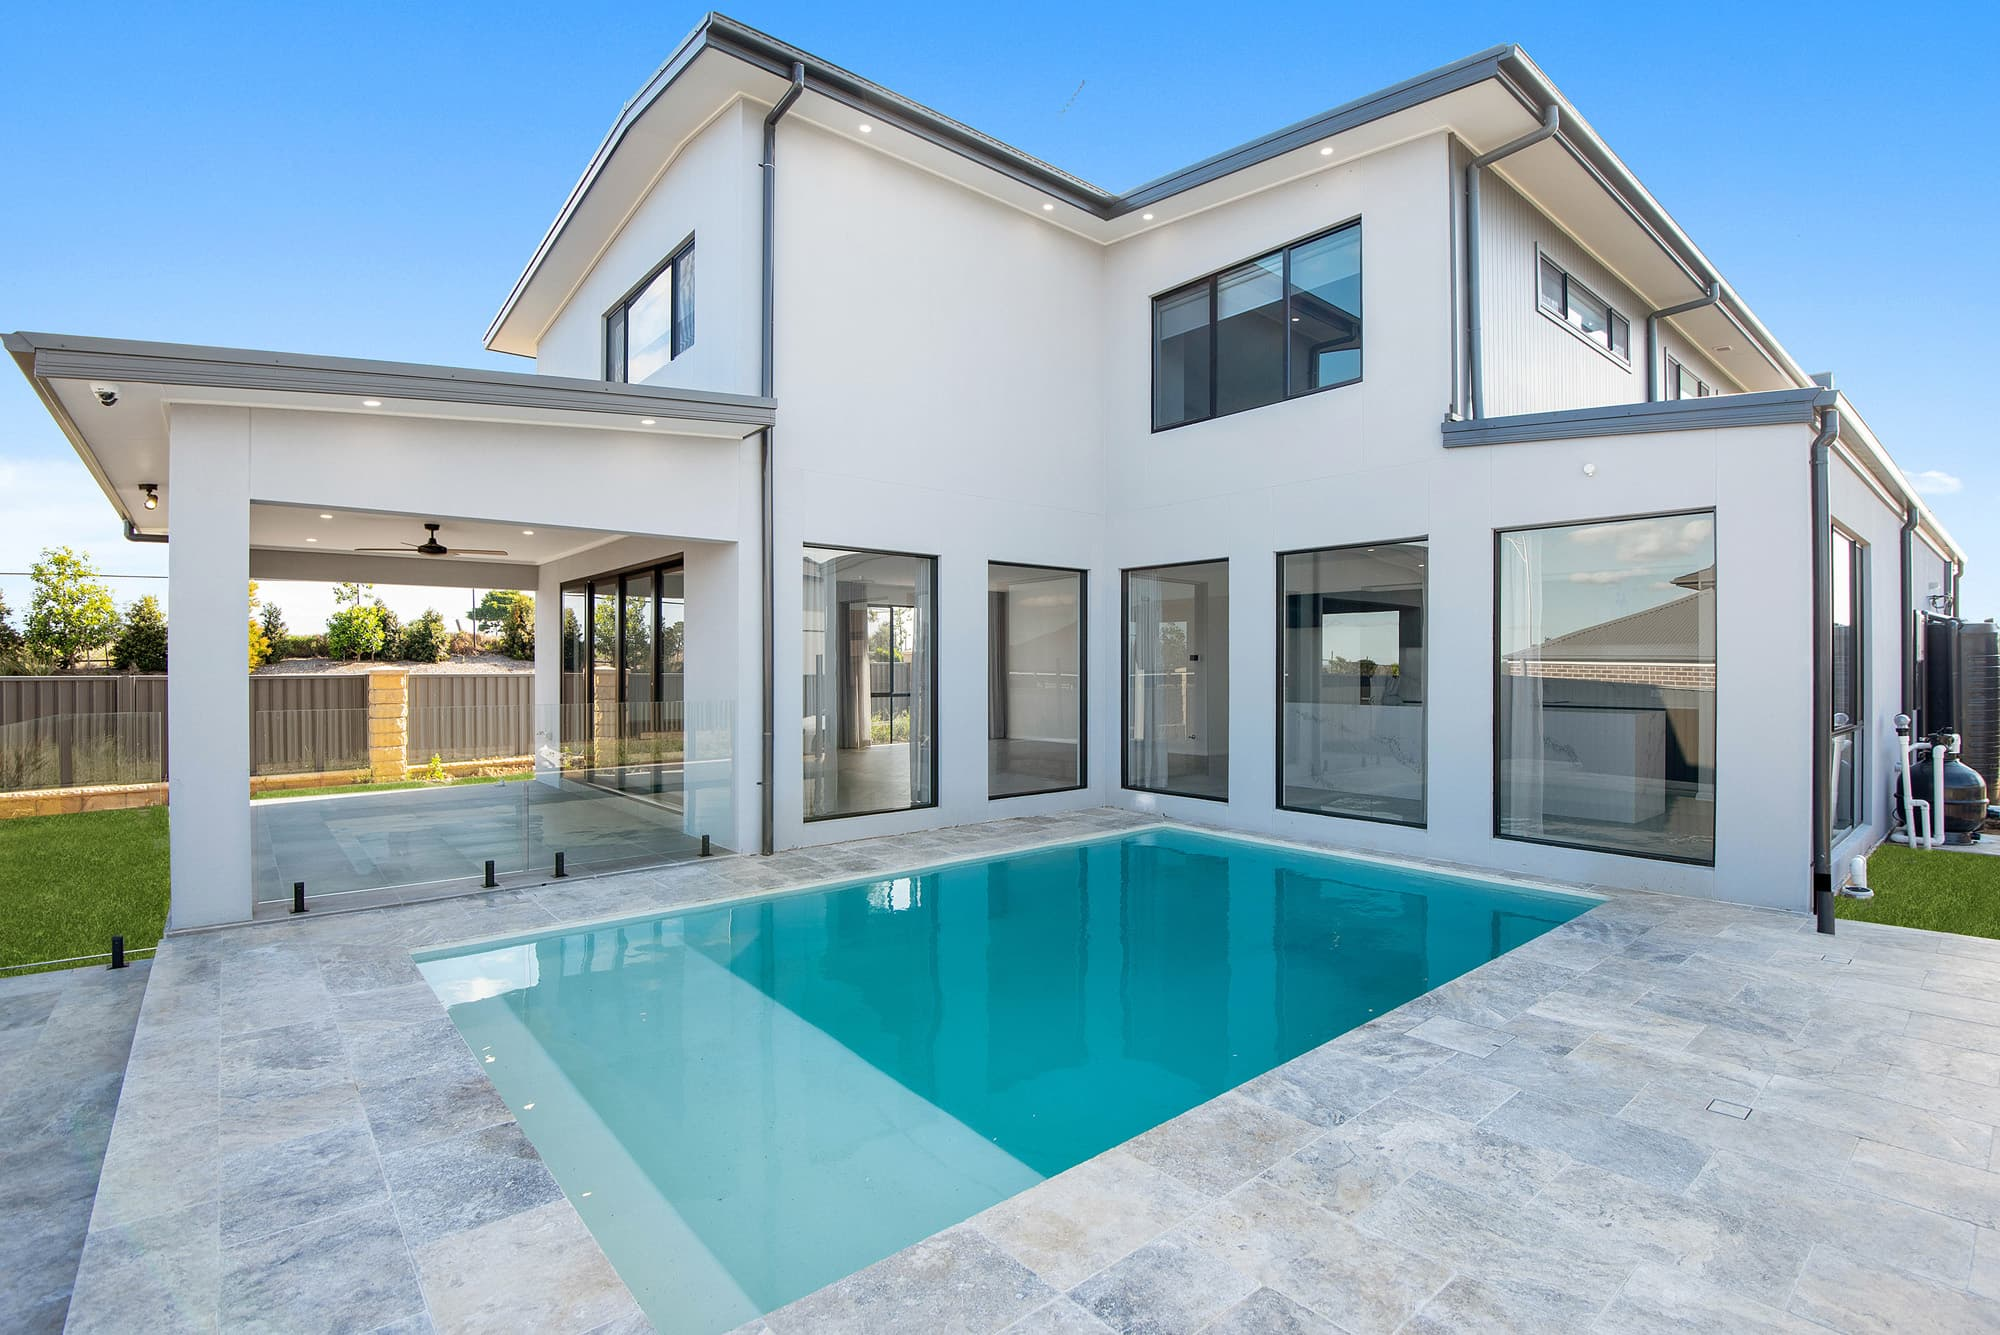 How to Pick the Right Swimming Pool for Your Home